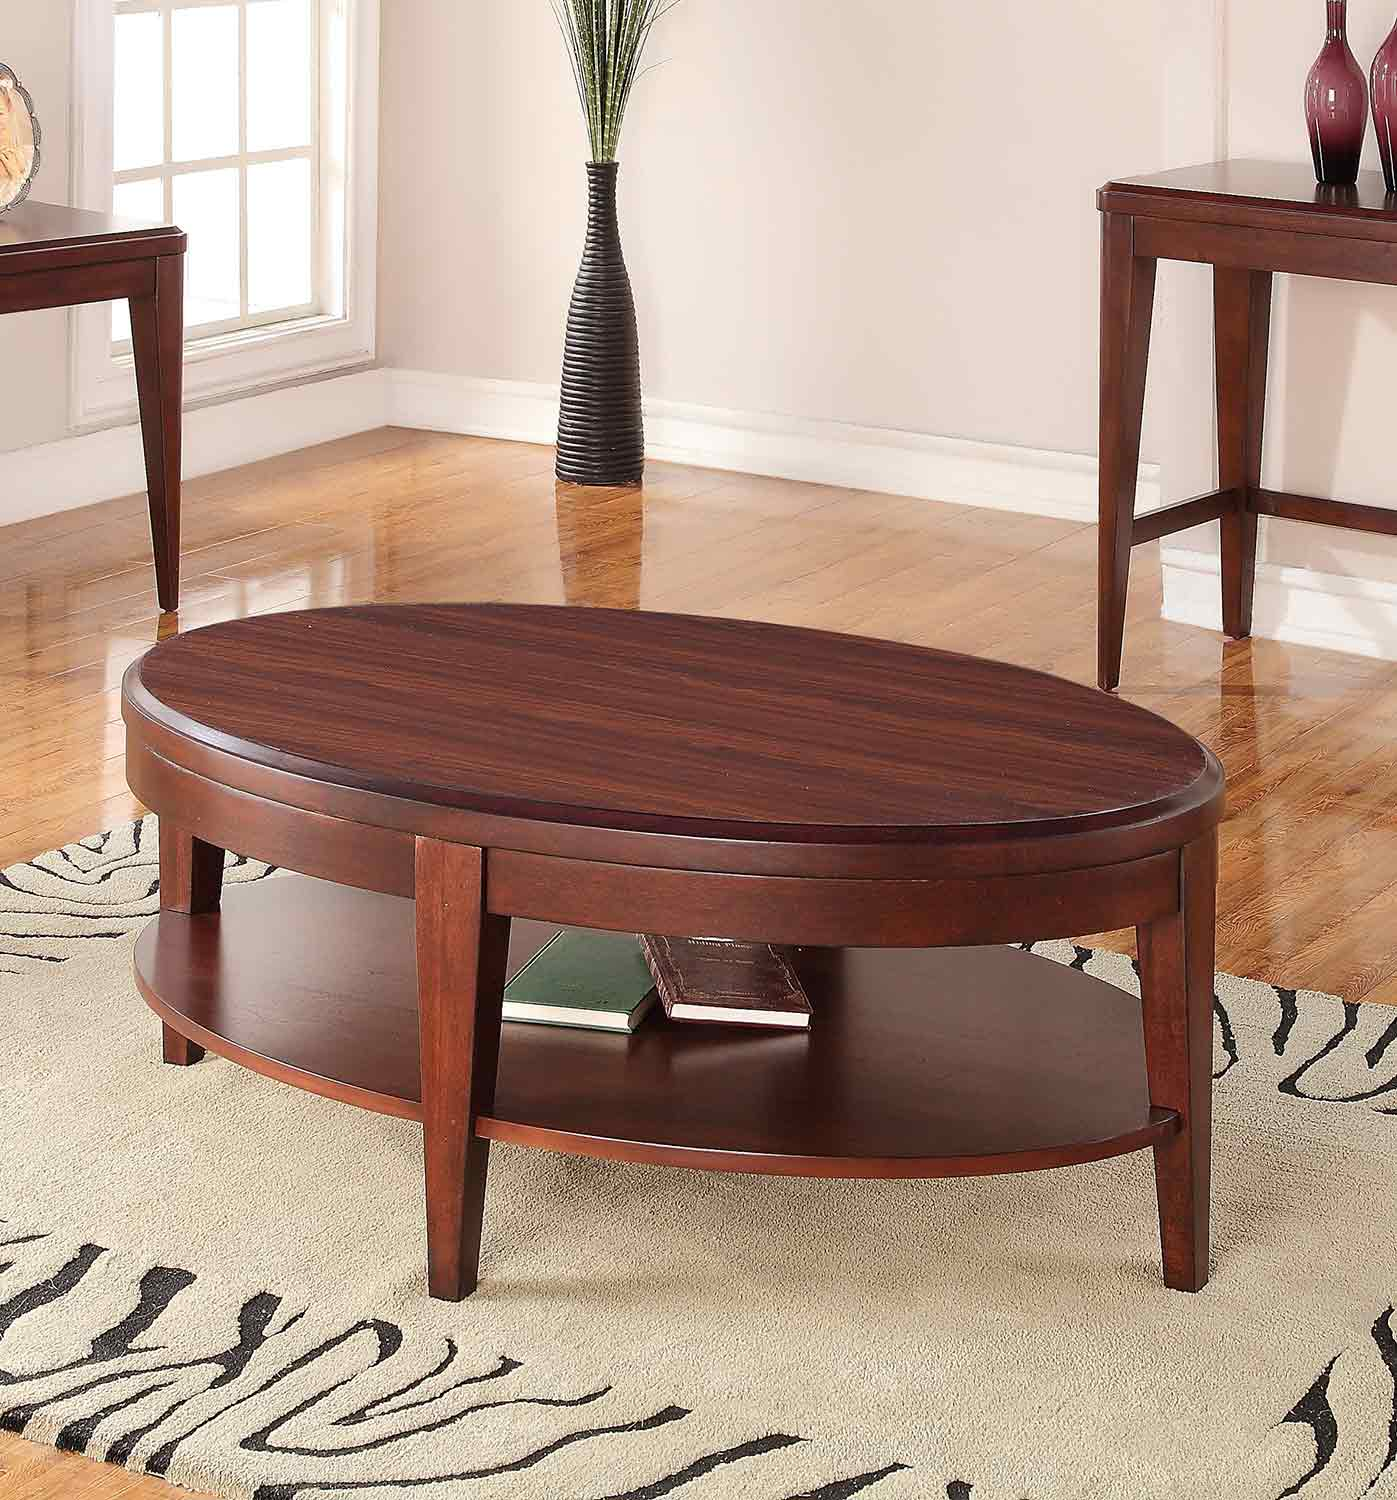 Homelegance Beaumont Cocktail Table - Brown Cherry